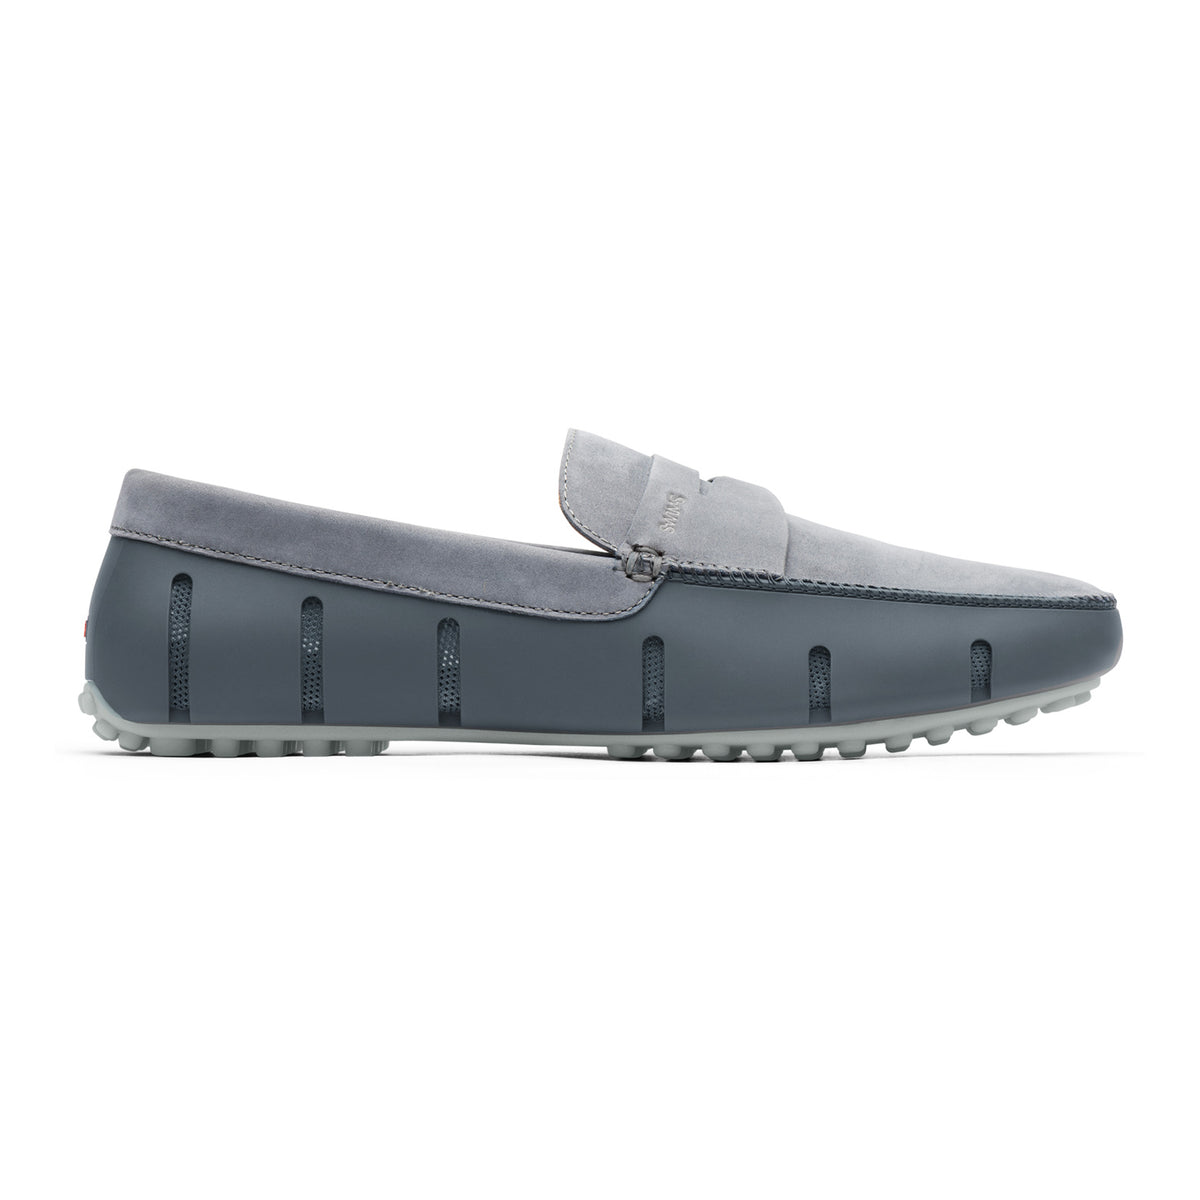 Penny Lux Loafer Driver Nubuck - background::white,variant::Gray/Alloy